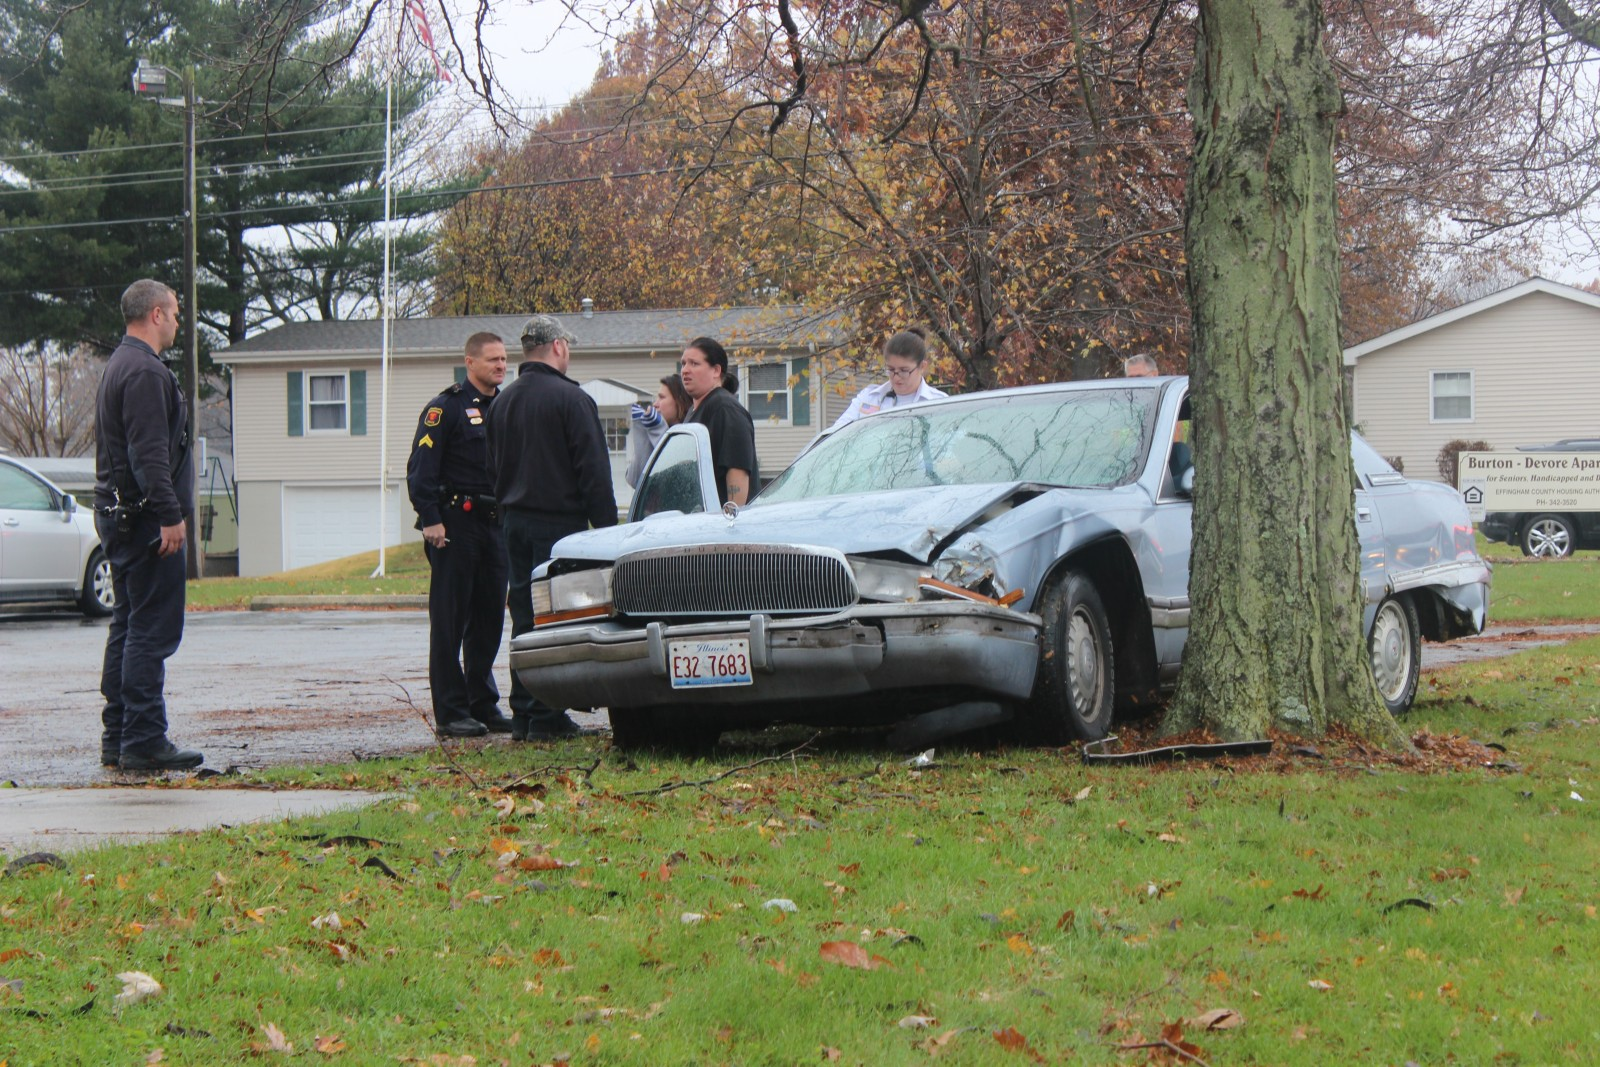 Paramedics and Police inspect a vehicle that collided with a tree on Temple Avenue.